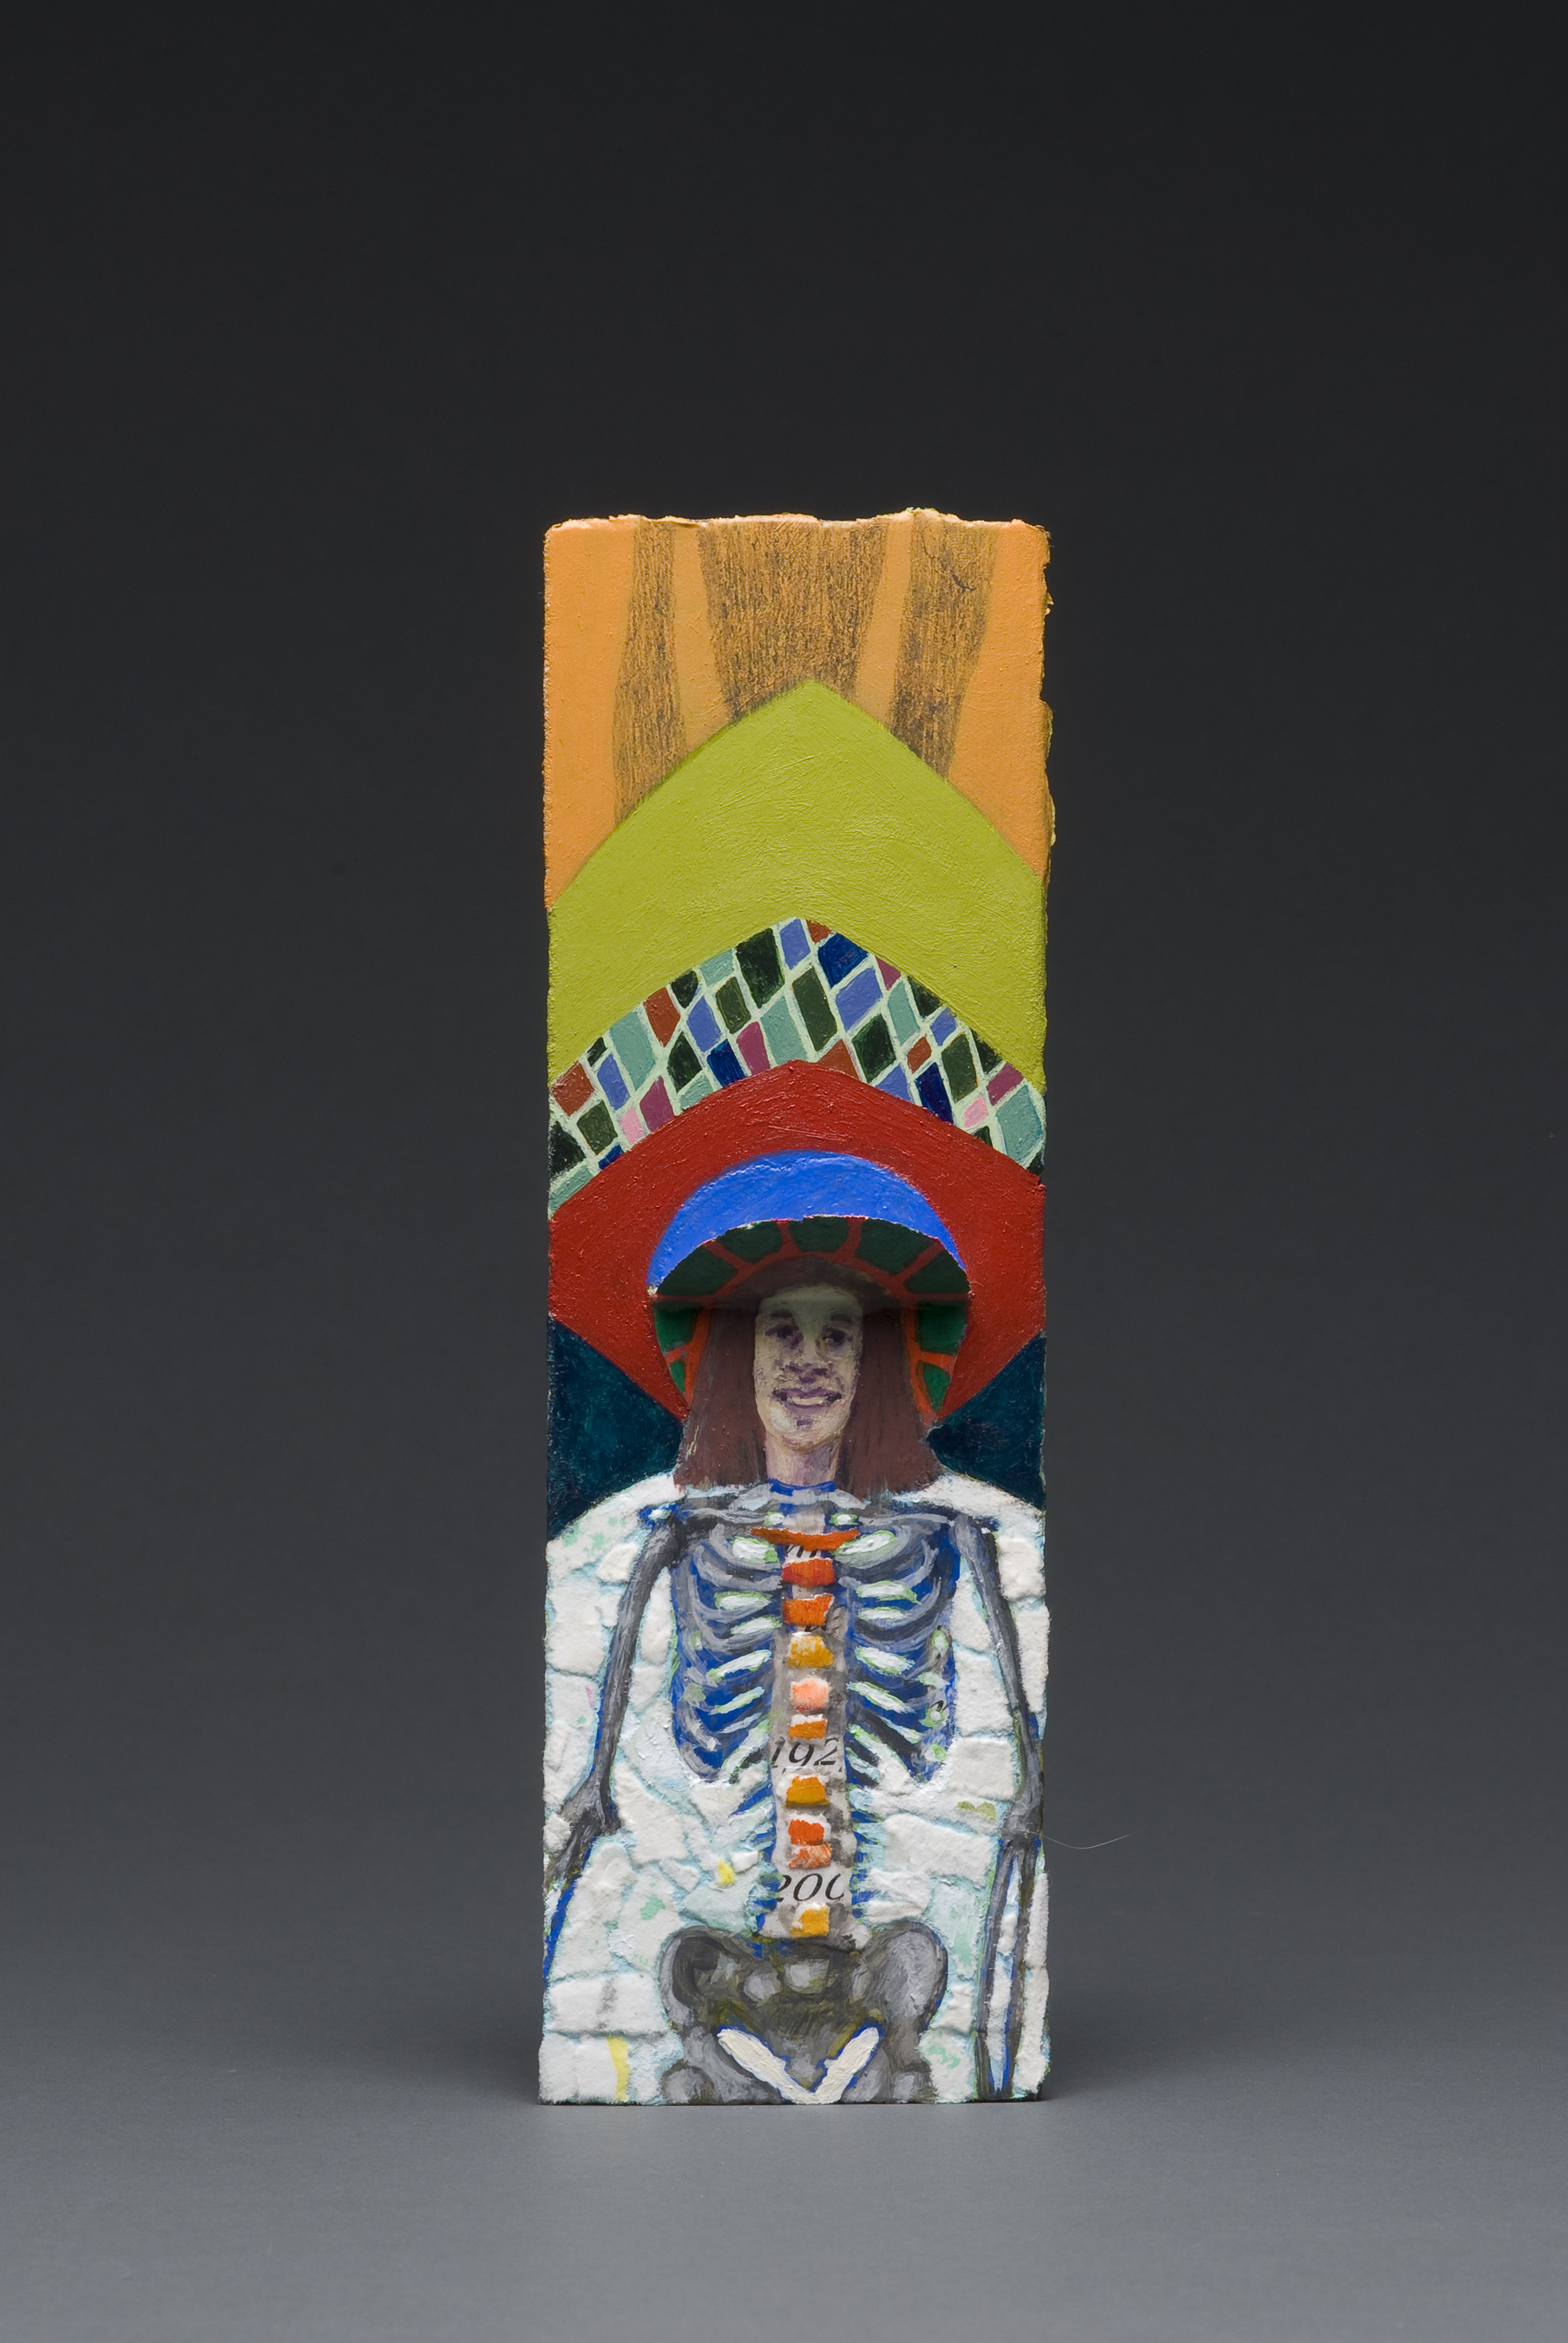 statues, installation, my father, funeral cards, death, holy, self portrait, skeleton, my bones, painting, collage